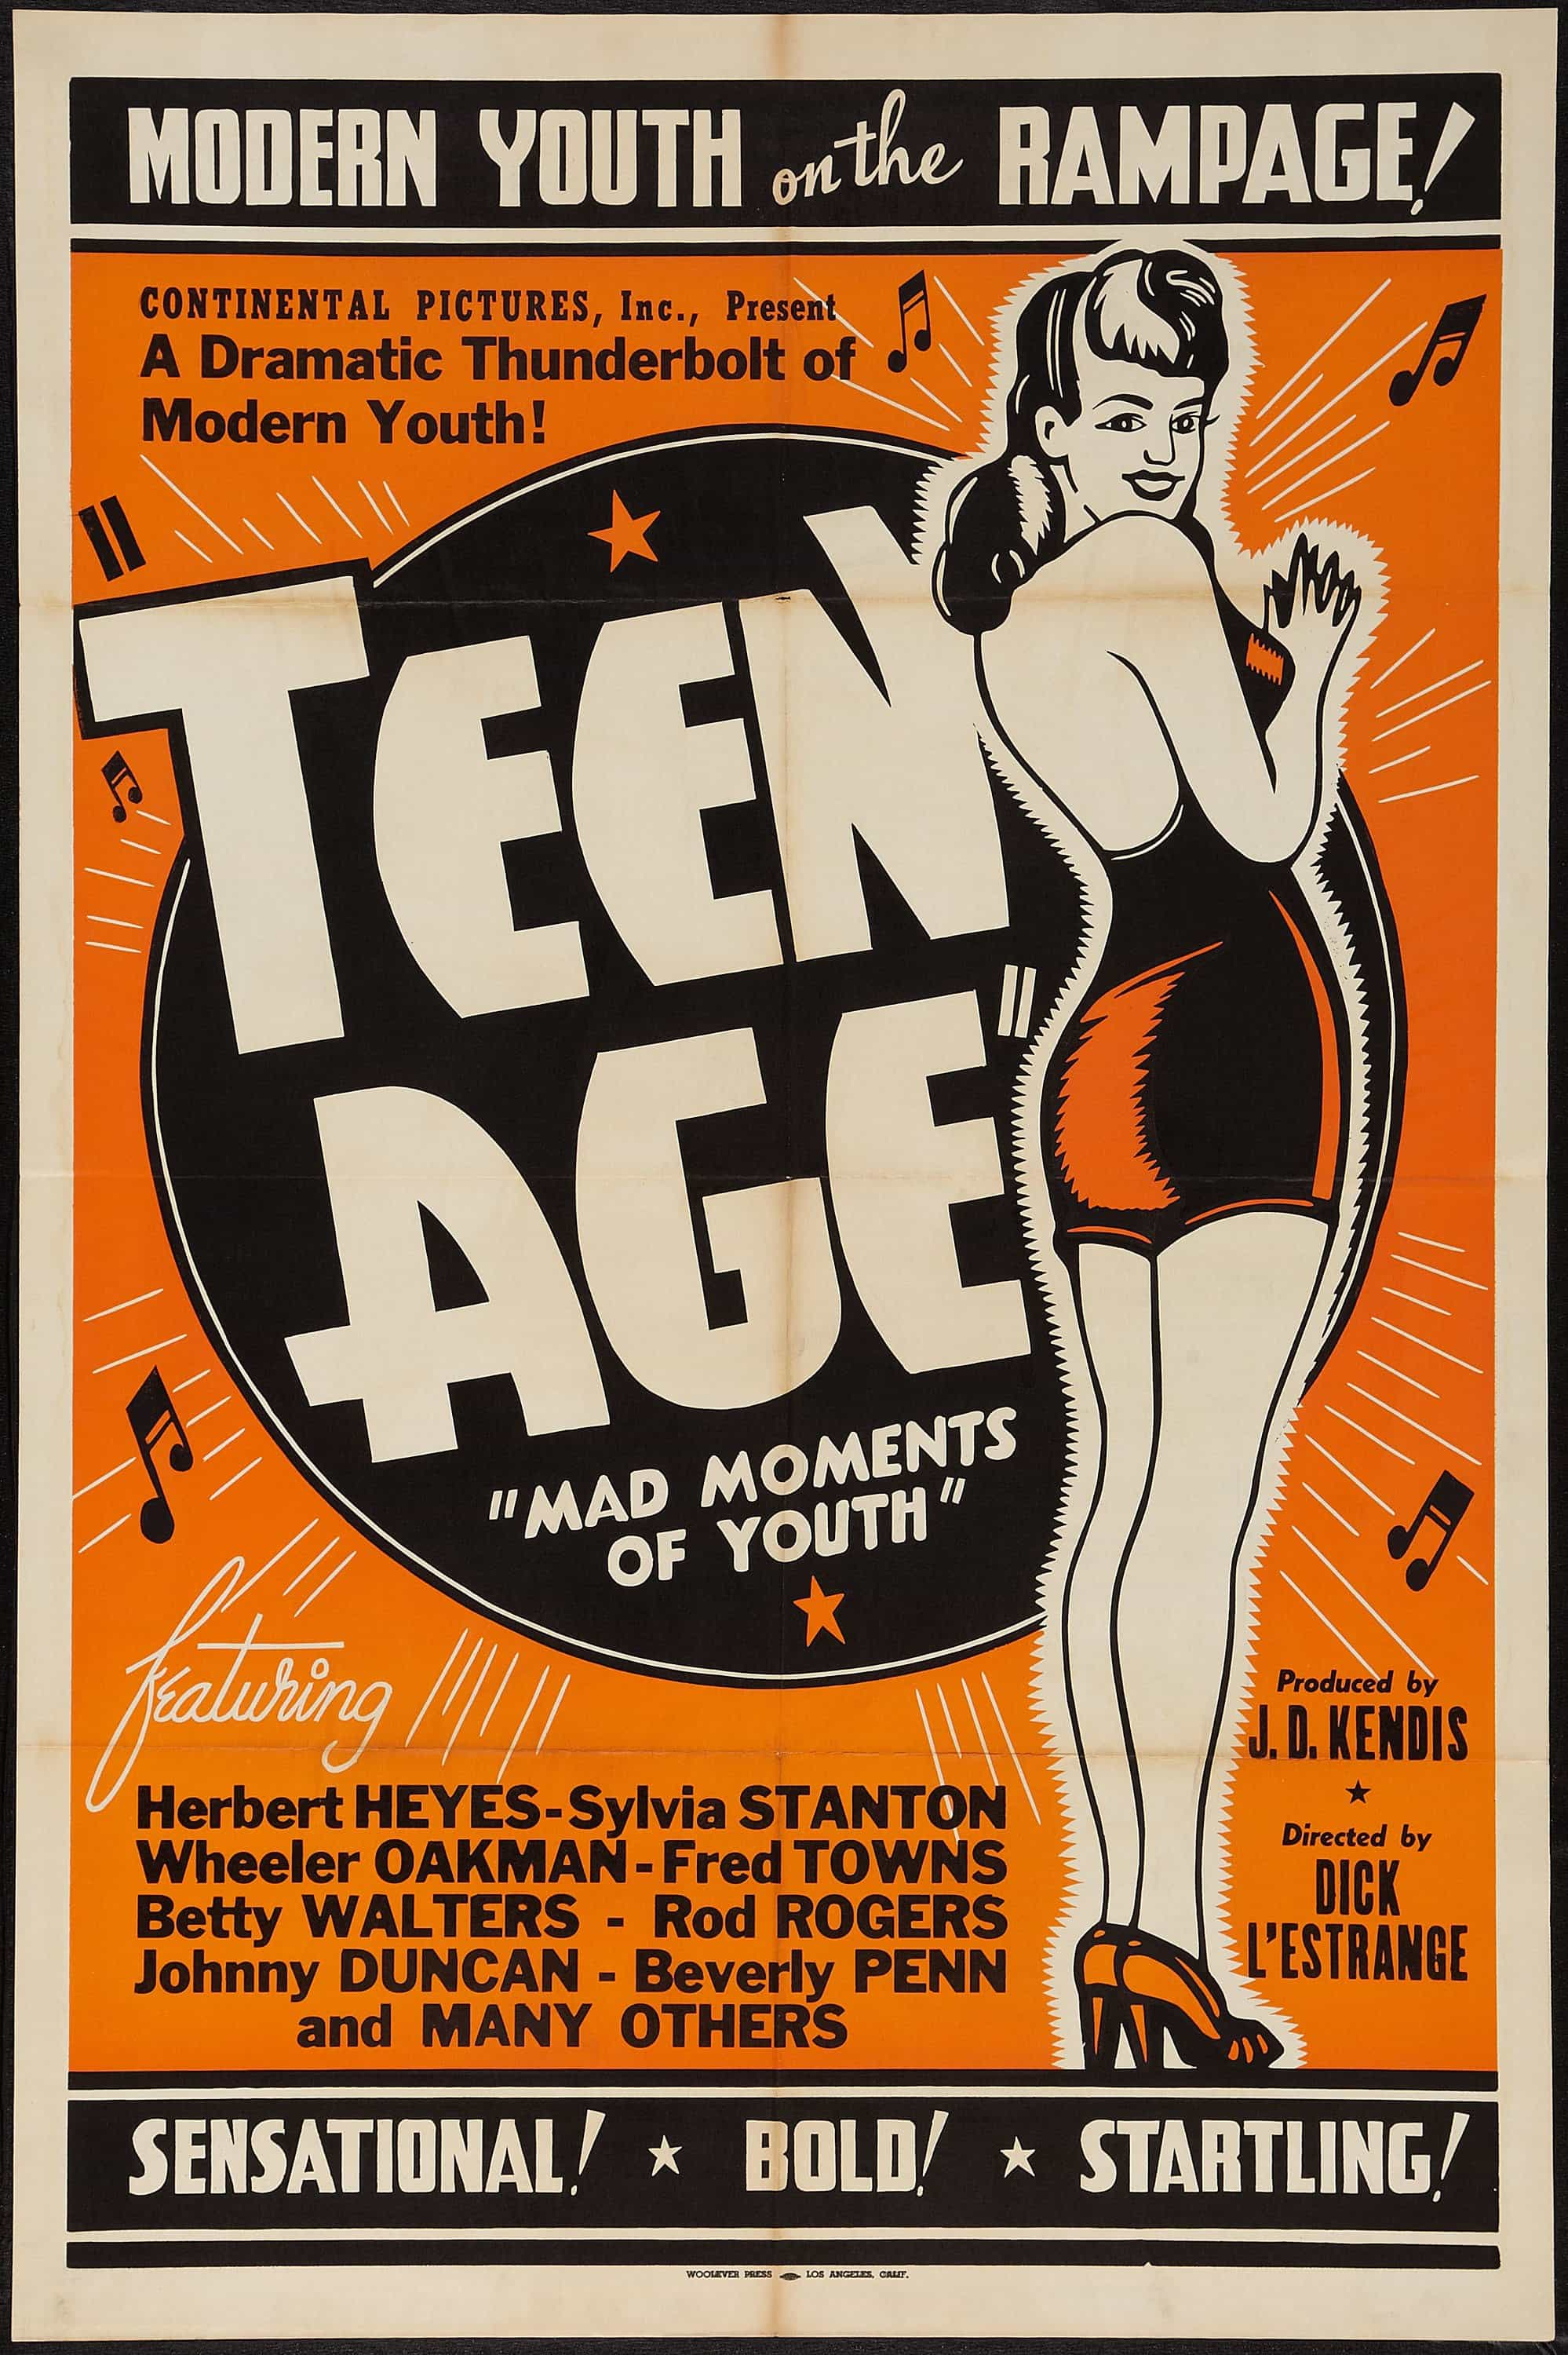 Vintage American Poster: Mad Moments of Youth